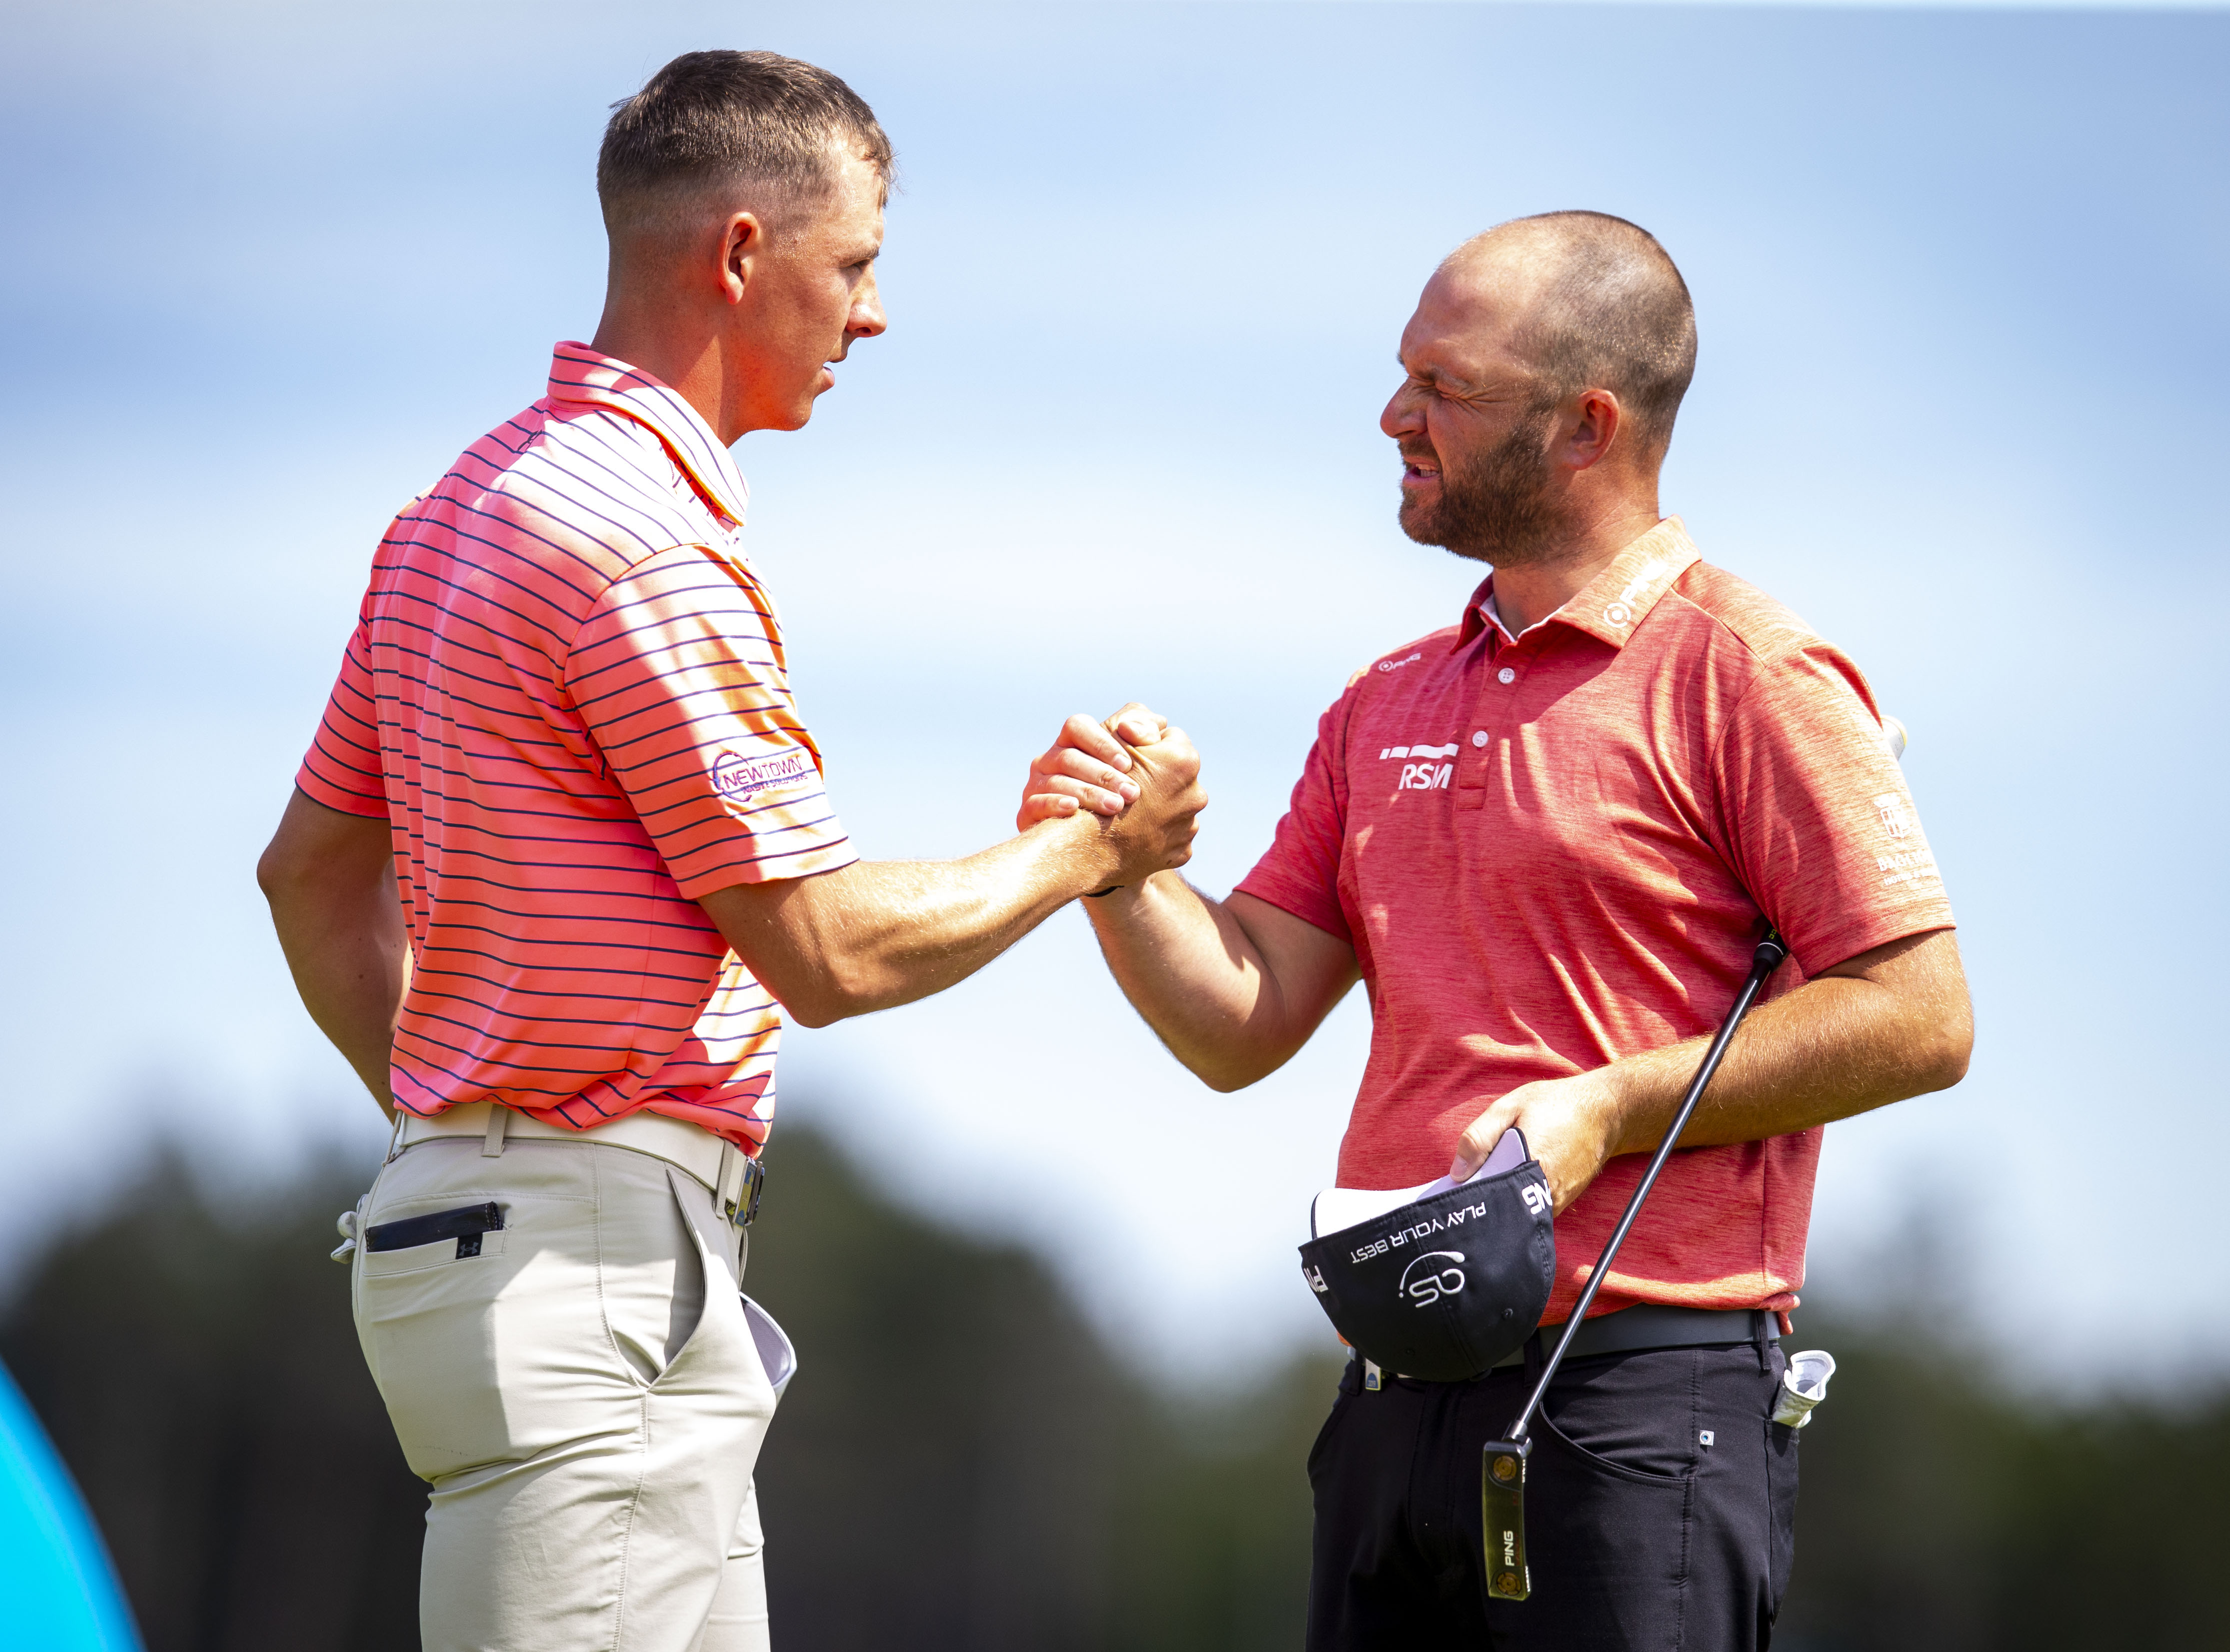 Scotland's Grant Forrest and Andy Sullivan shake hands after their round in the Scottish Open.